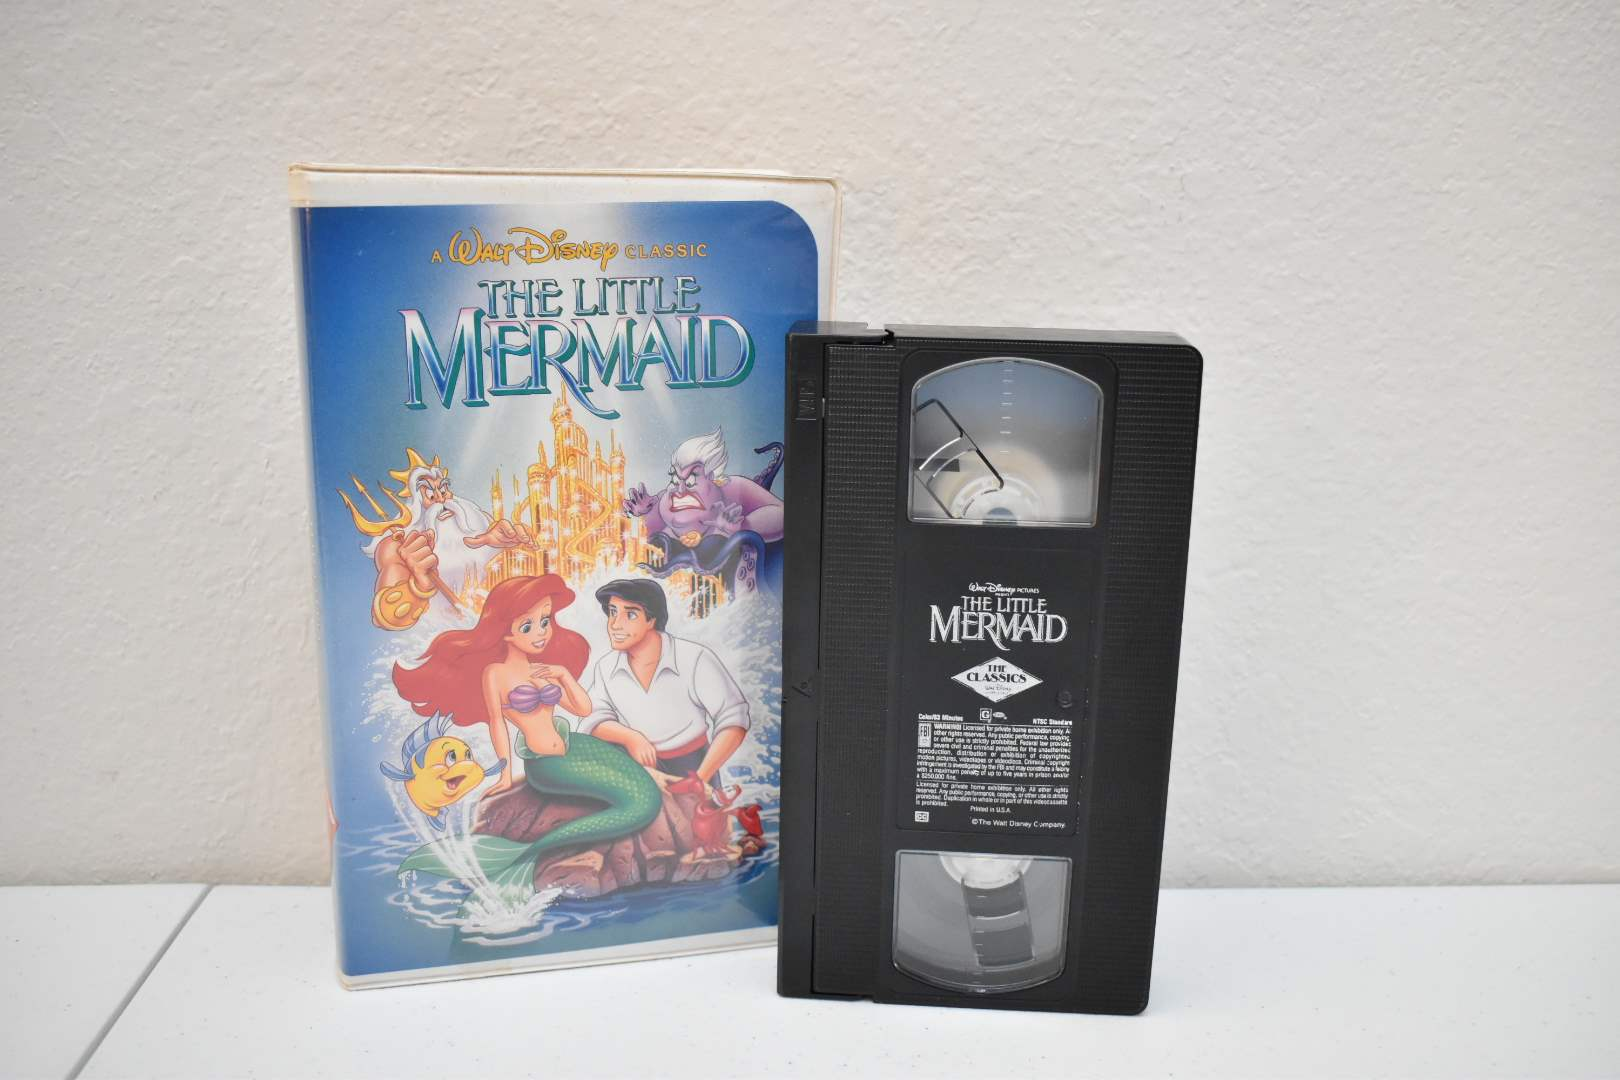 Little Mermaid VHS with BANNED Cover Art